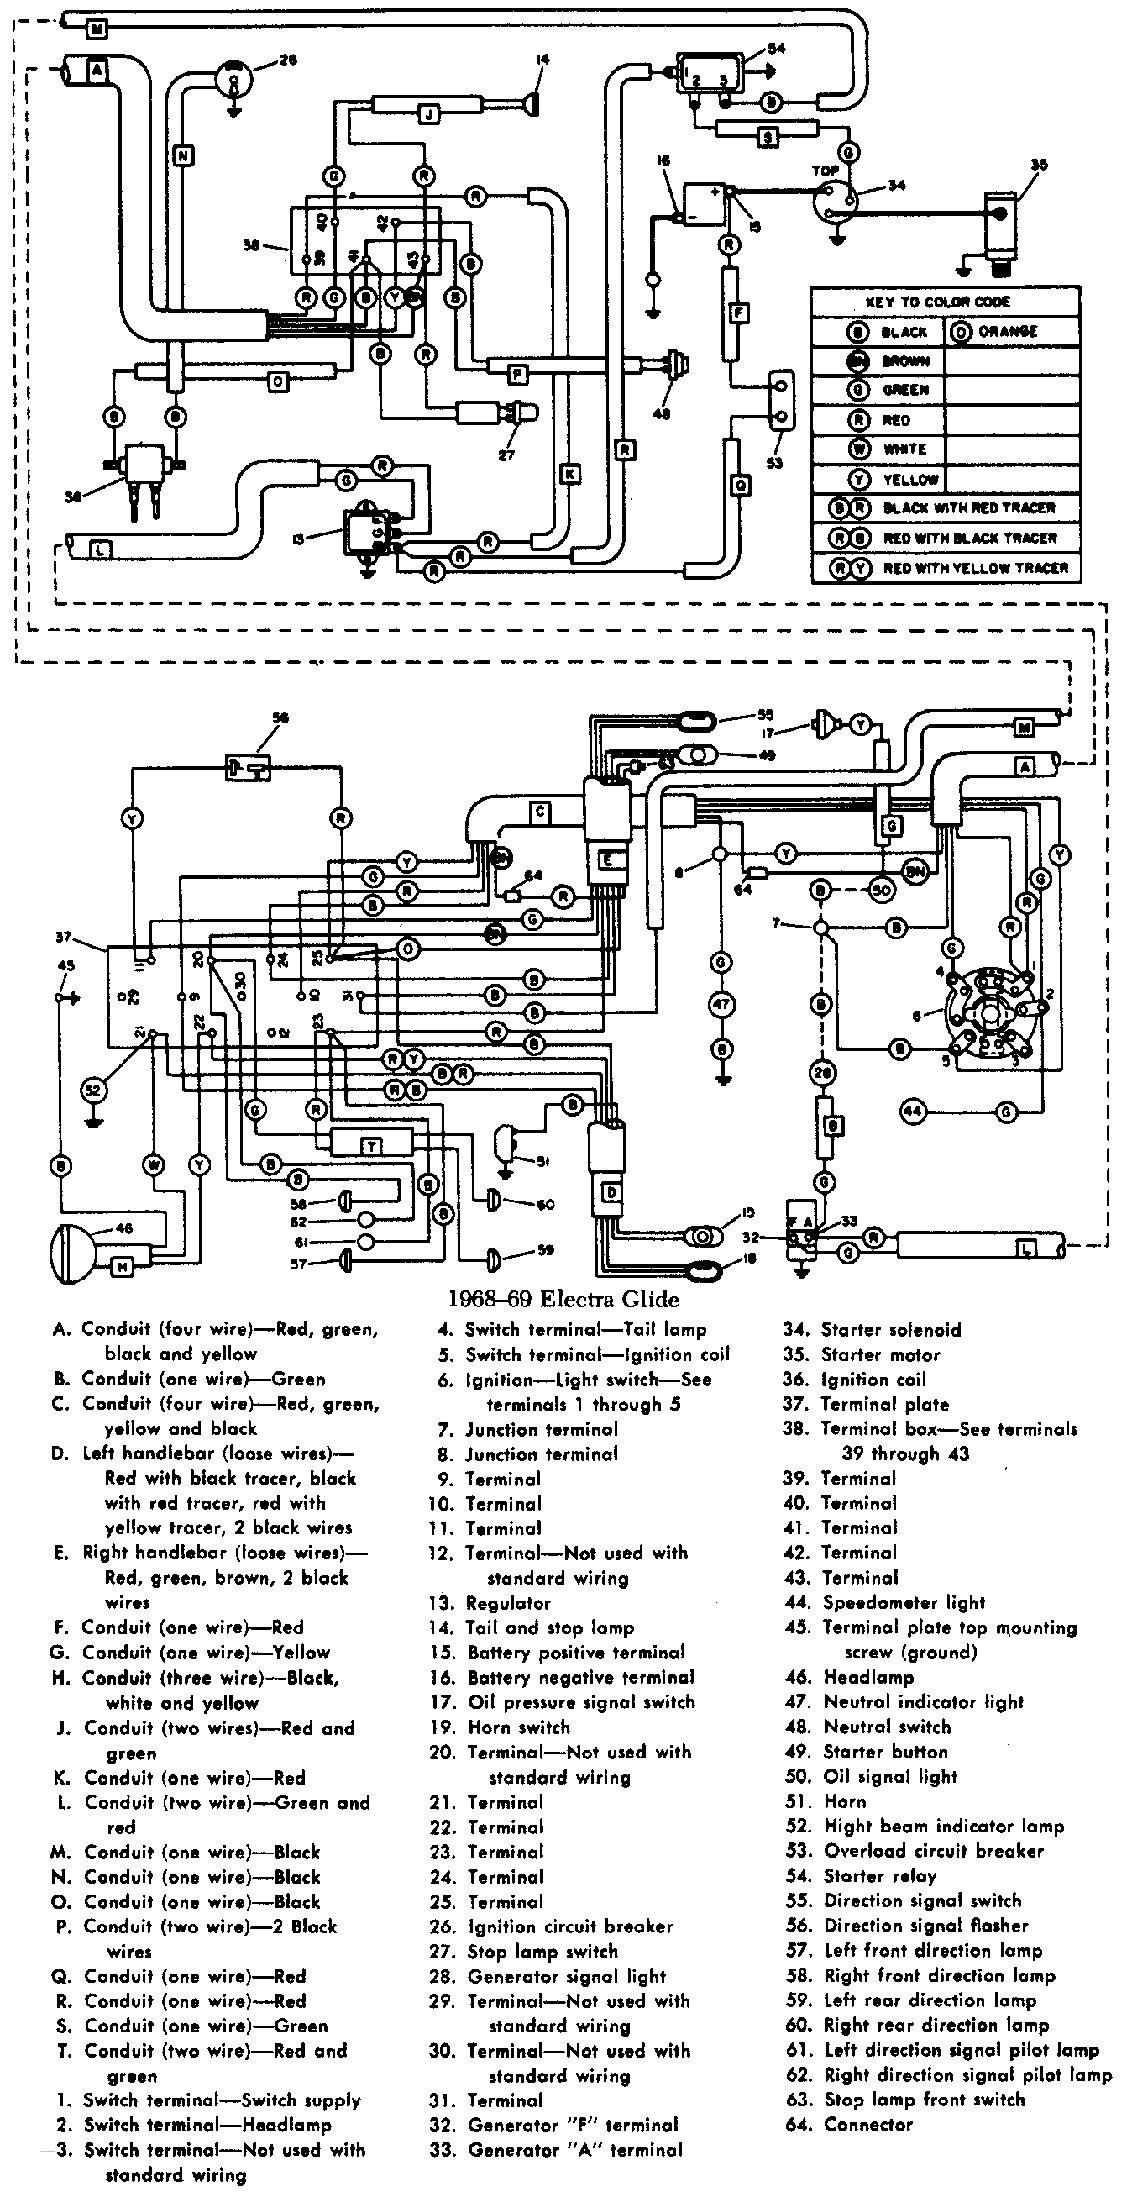 WRG-6786] Harley Davidson Wiring Diagram Download